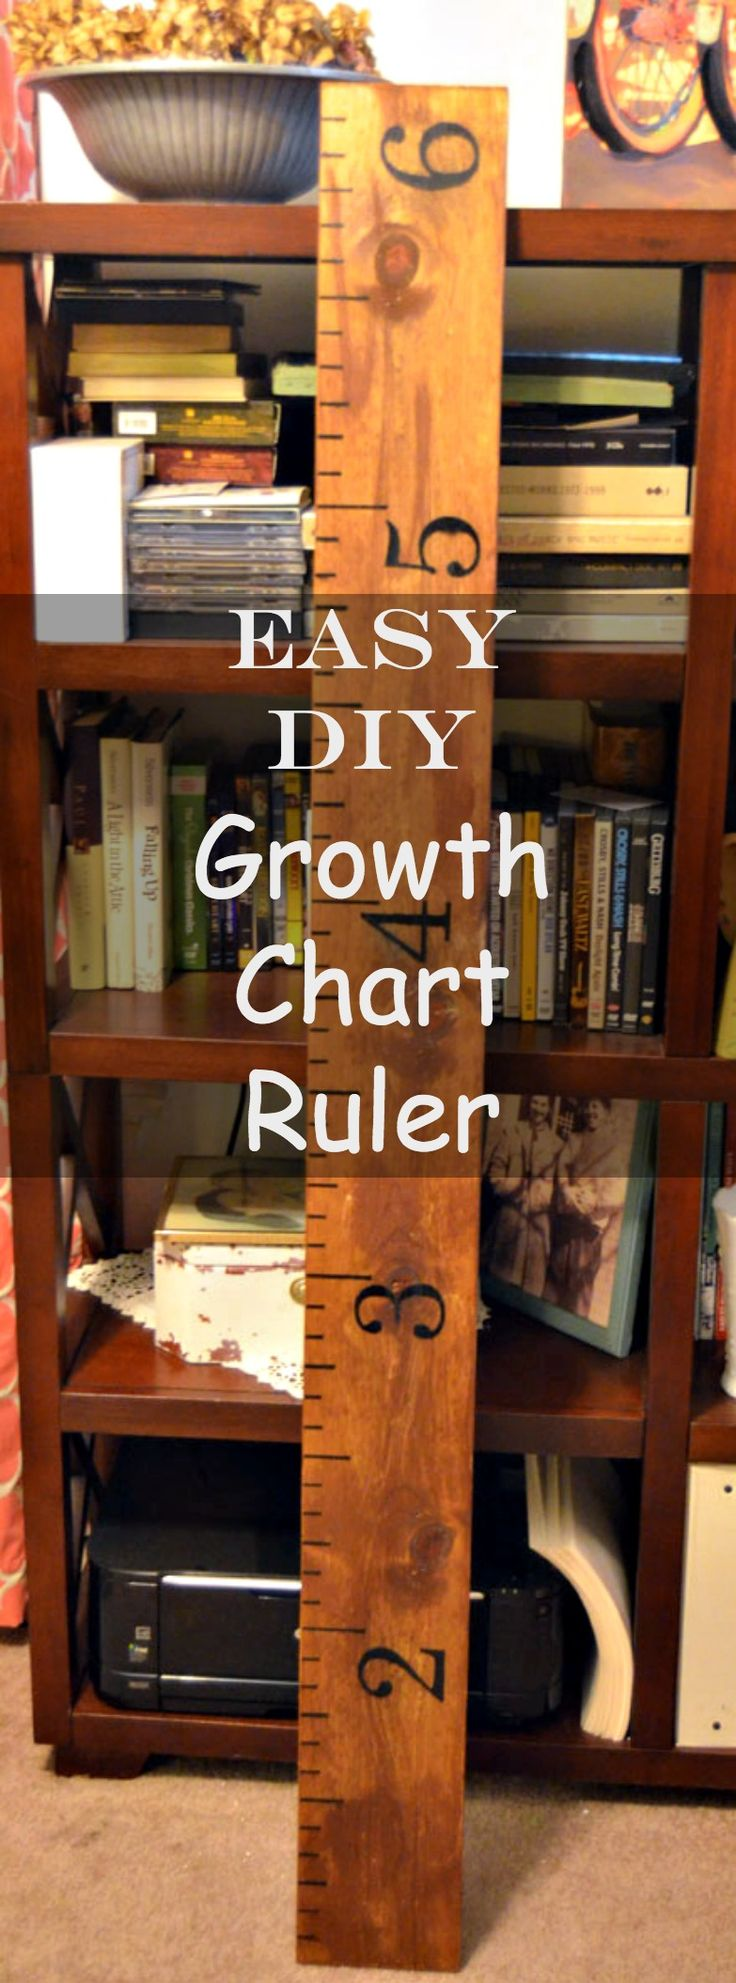 How to Make a Growth Chart Ruler | createandbabble.com